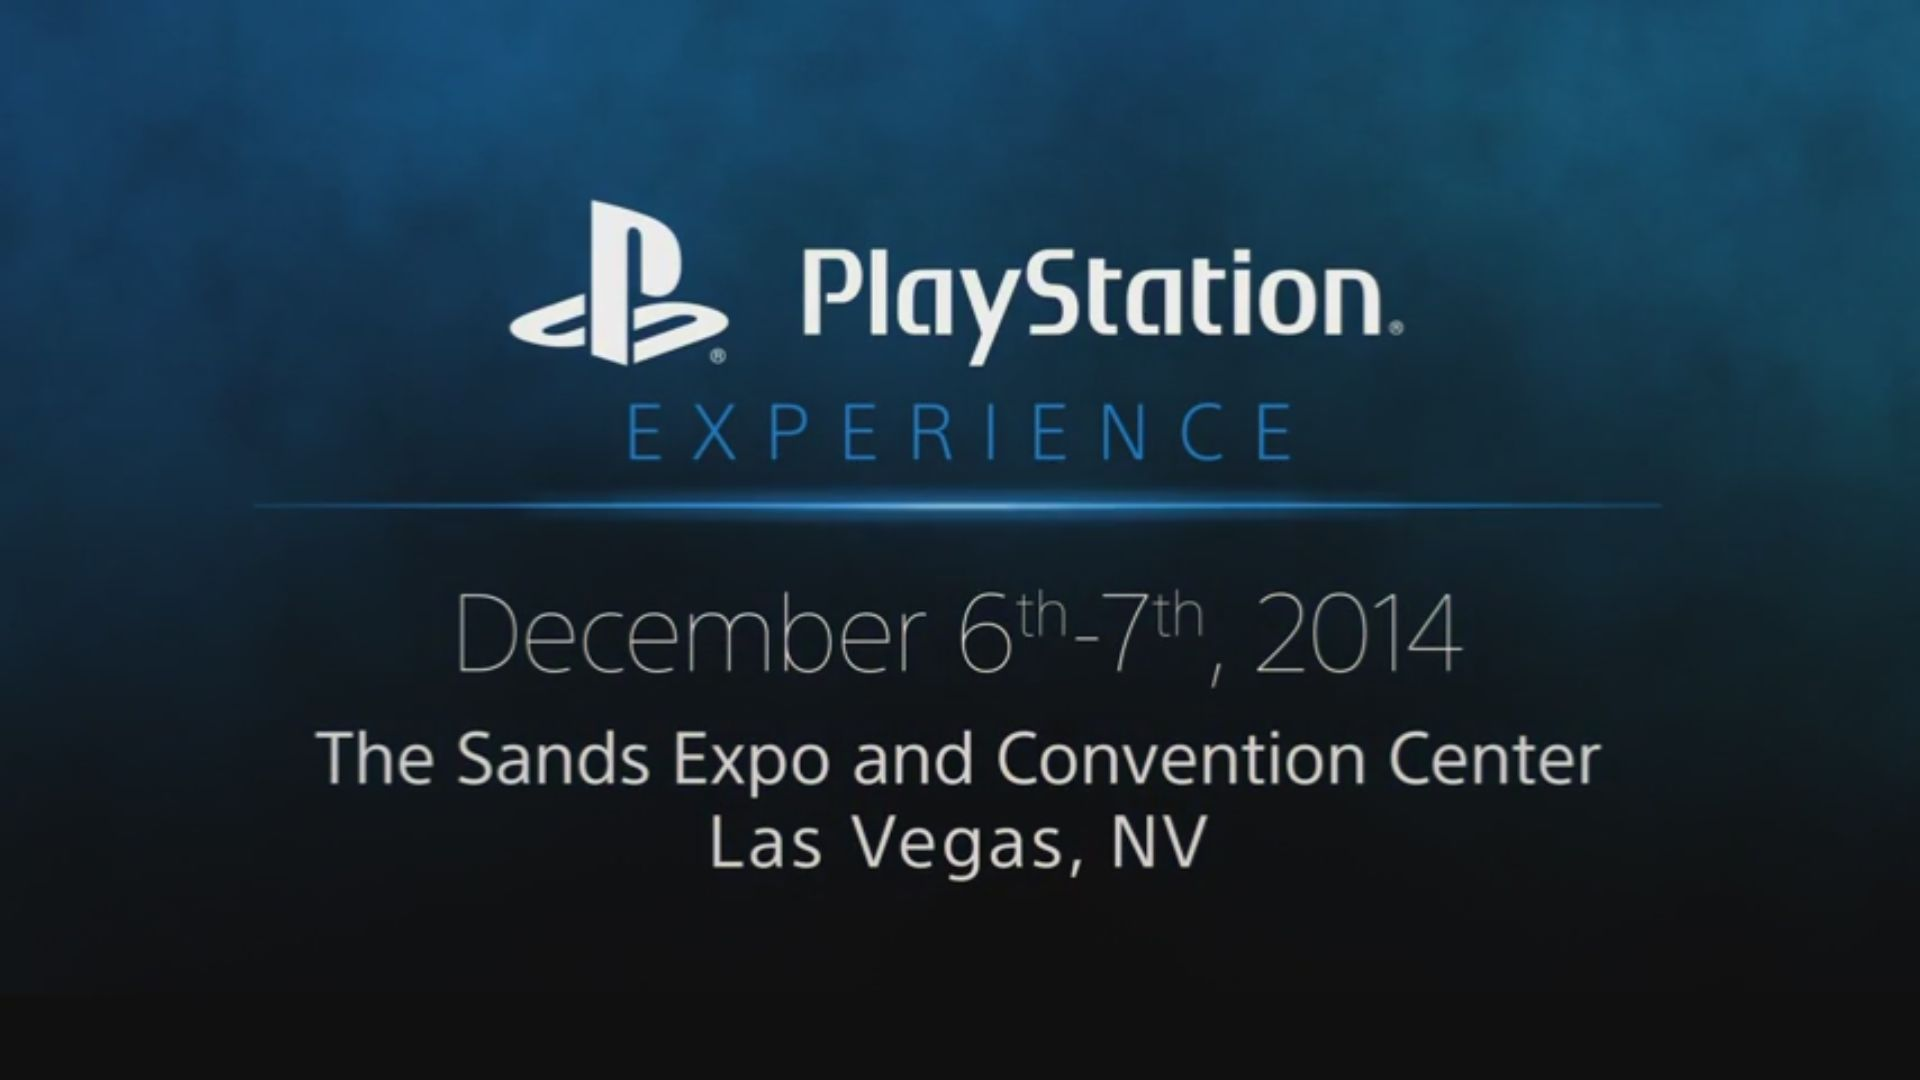 Playstation experience dates